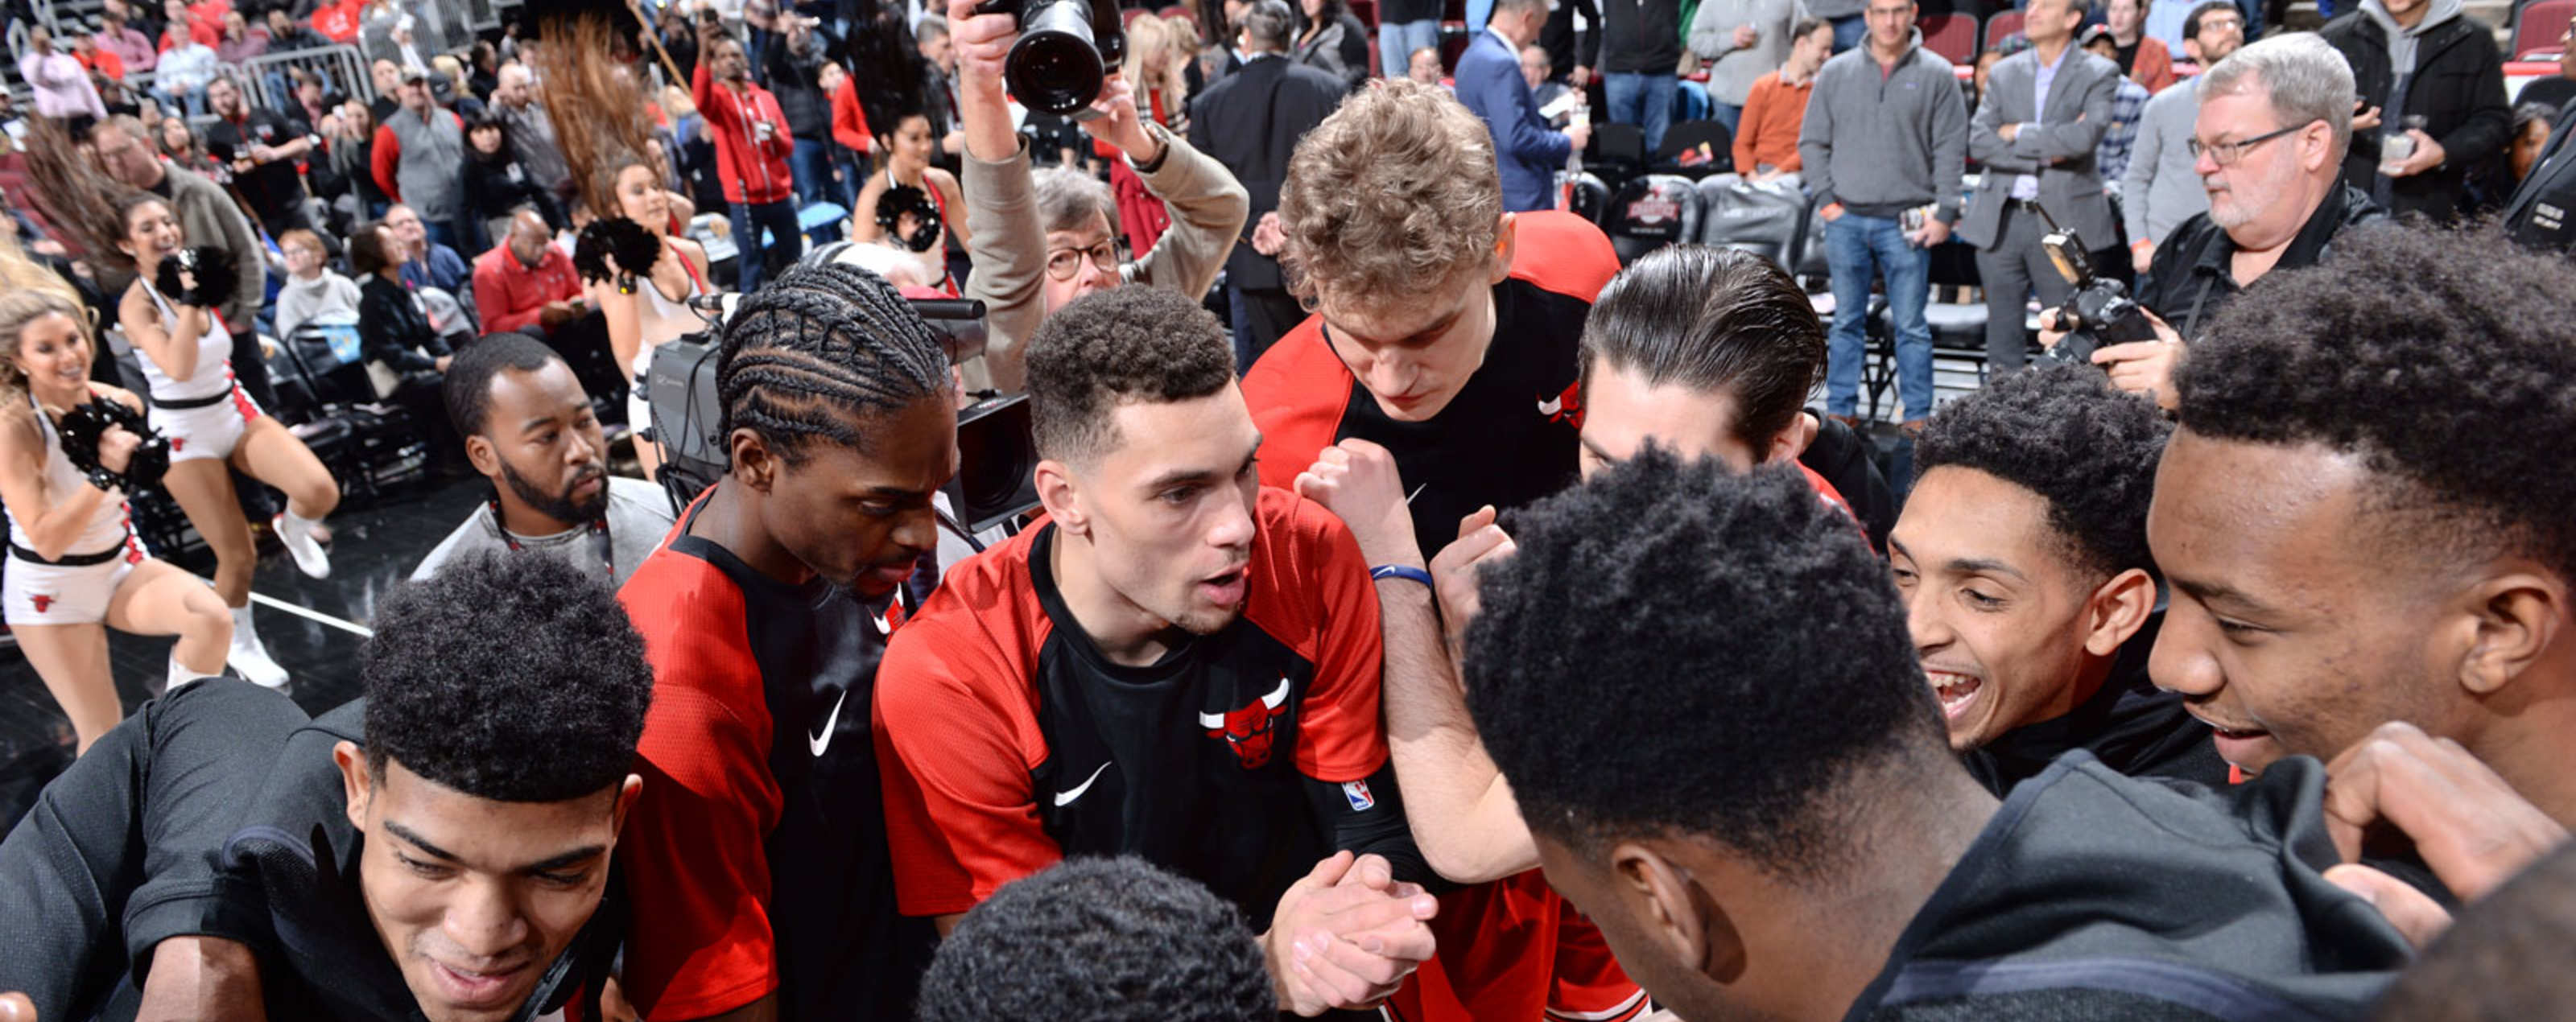 Chicago Bulls huddle before a game.